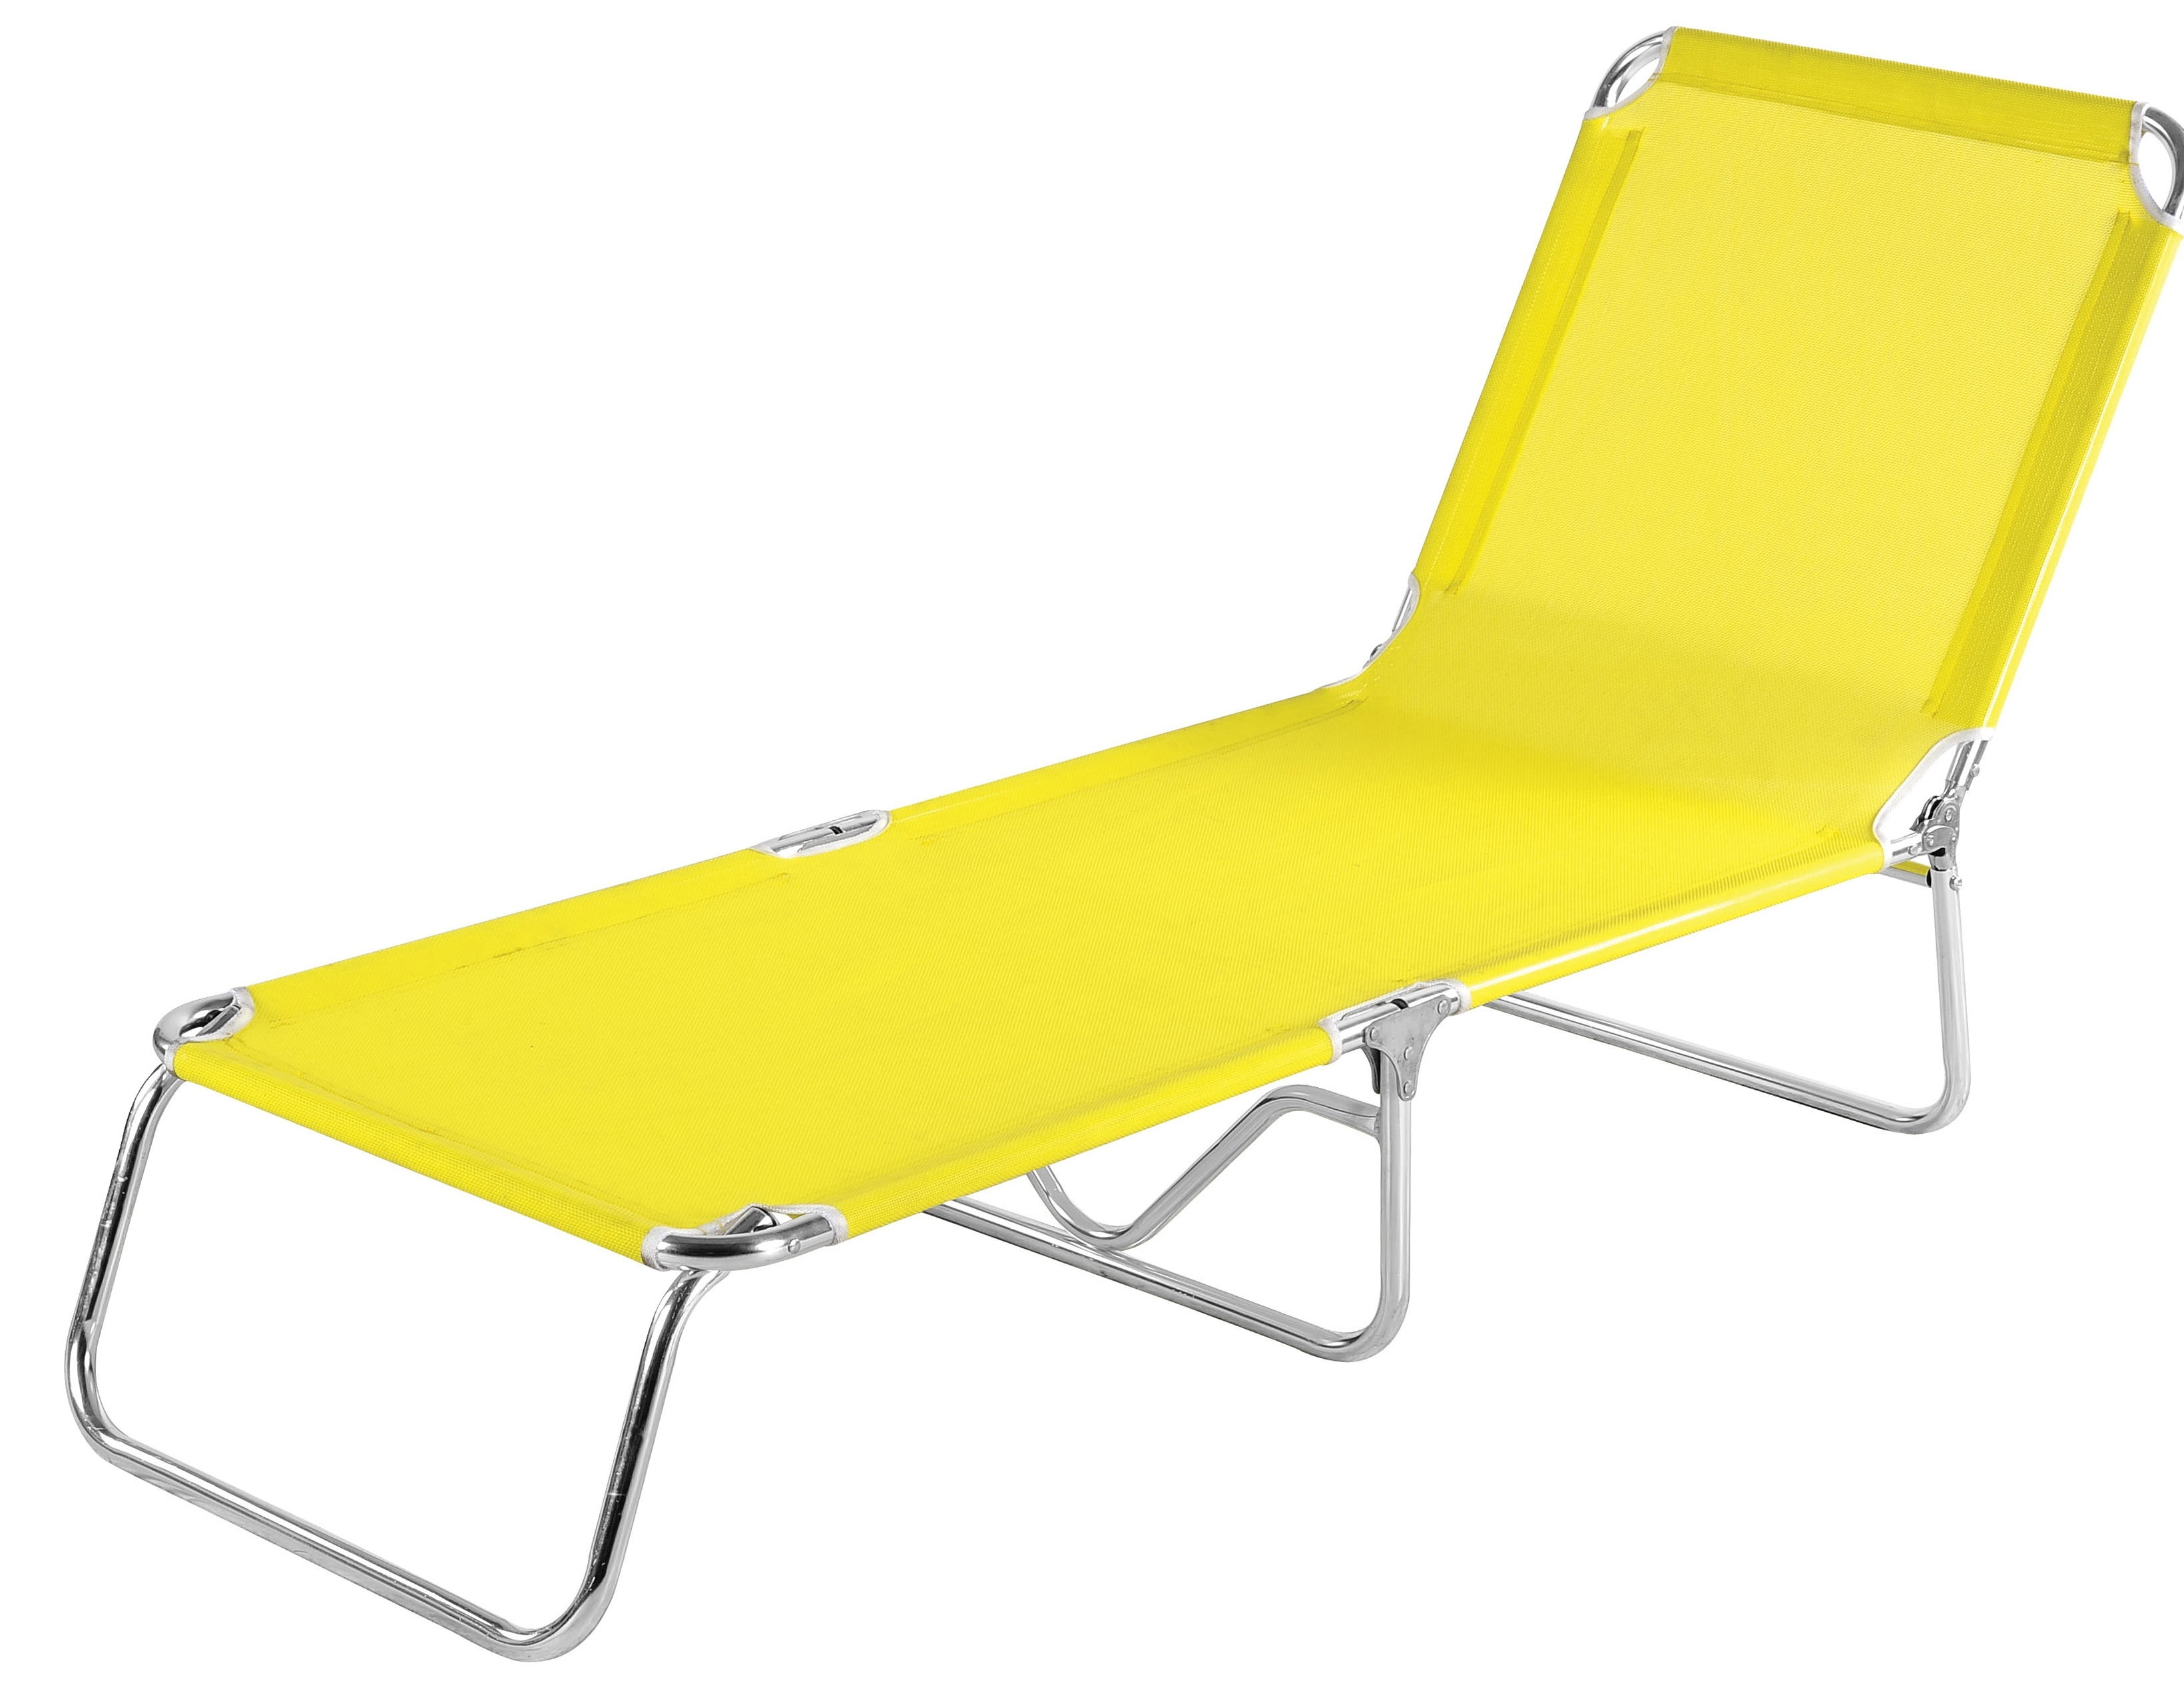 Folding Jelly Chaise Lounge Chair • Lounge Chairs Ideas with regard to Well-liked Jelly Chaise Lounge Chairs